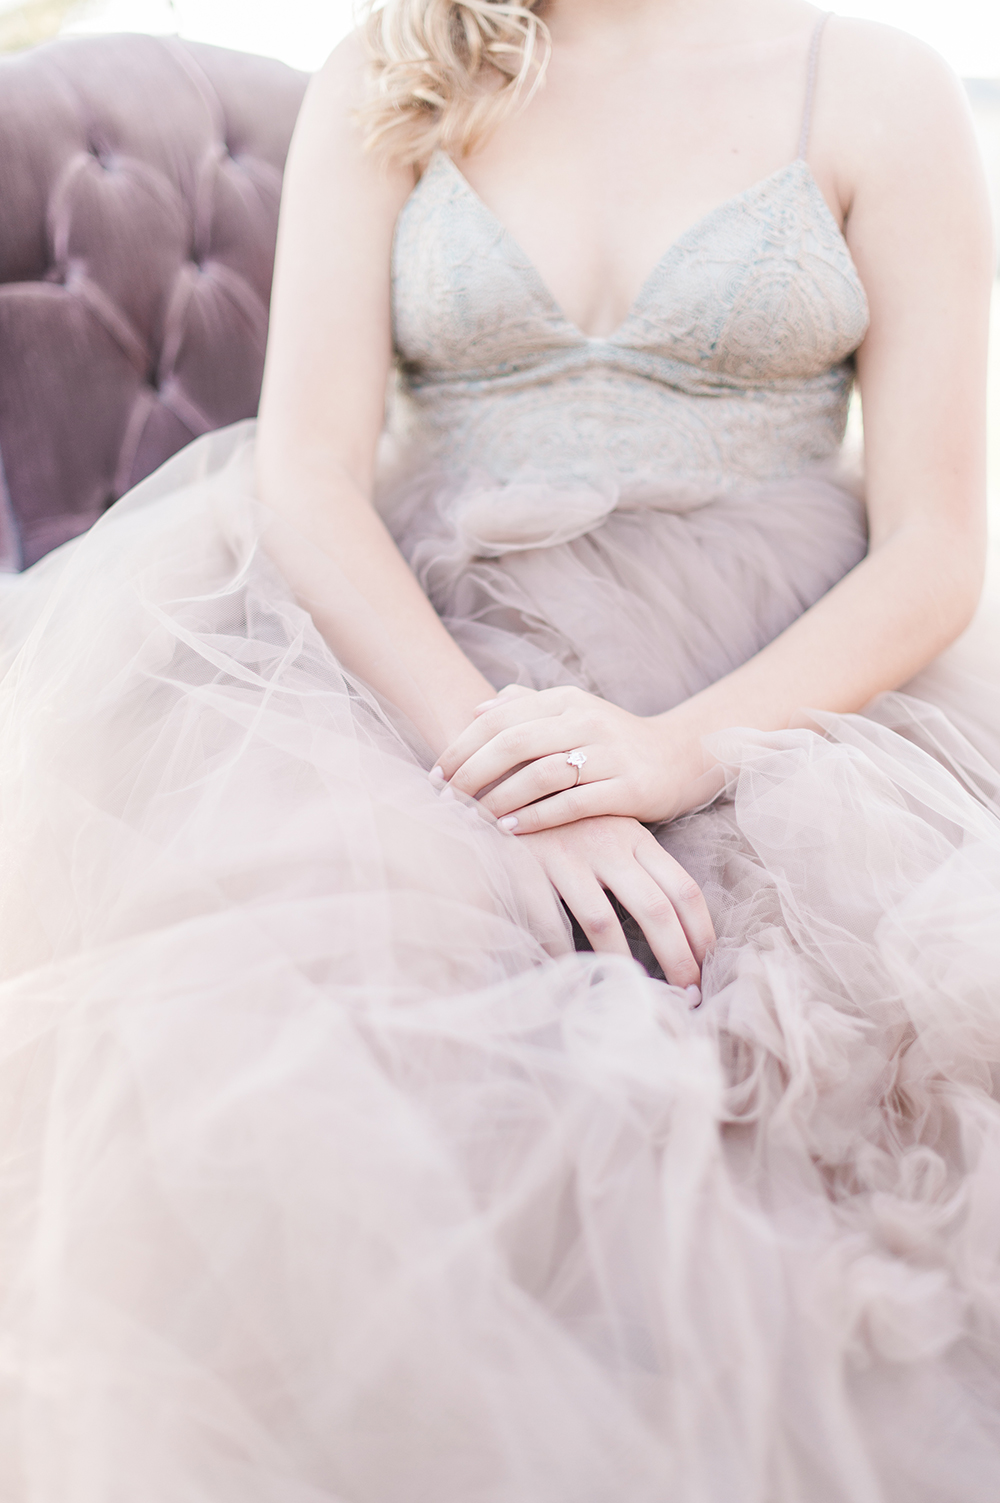 modern bridal gowns - photo by Jenny B Photos http://ruffledblog.com/ethereal-wedding-inspiration-with-vintage-accents